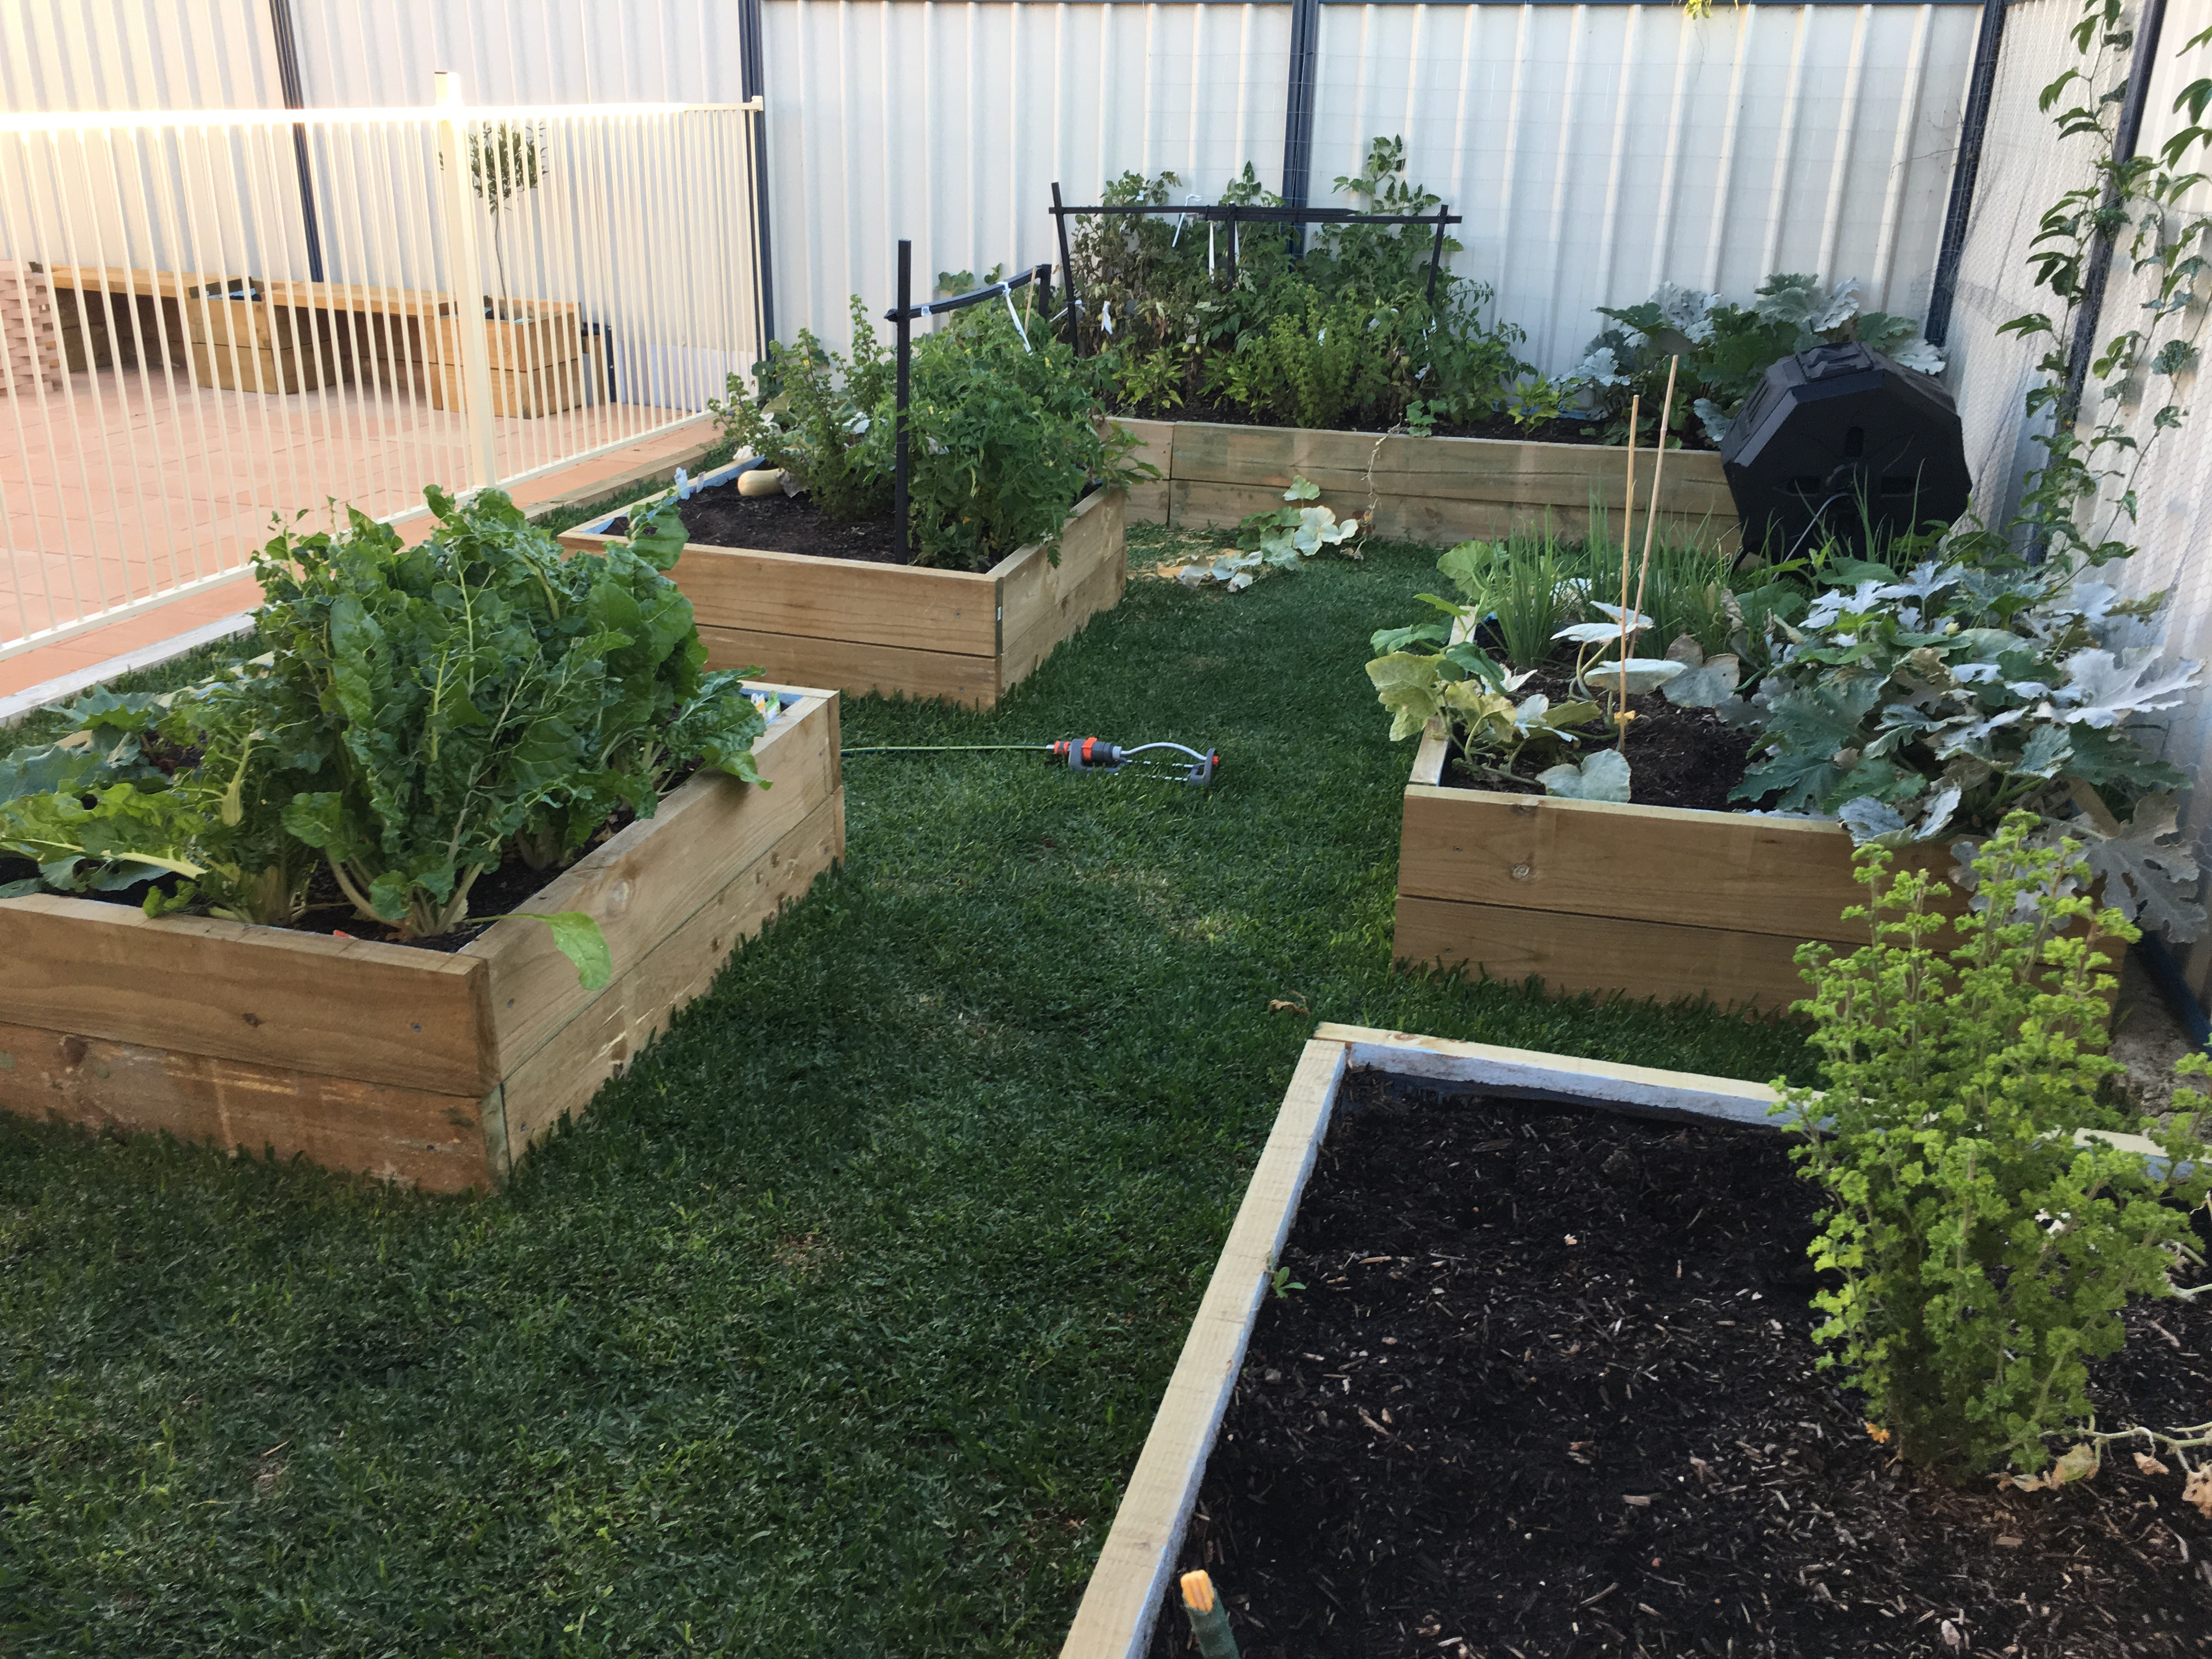 Customized raised veggie patches